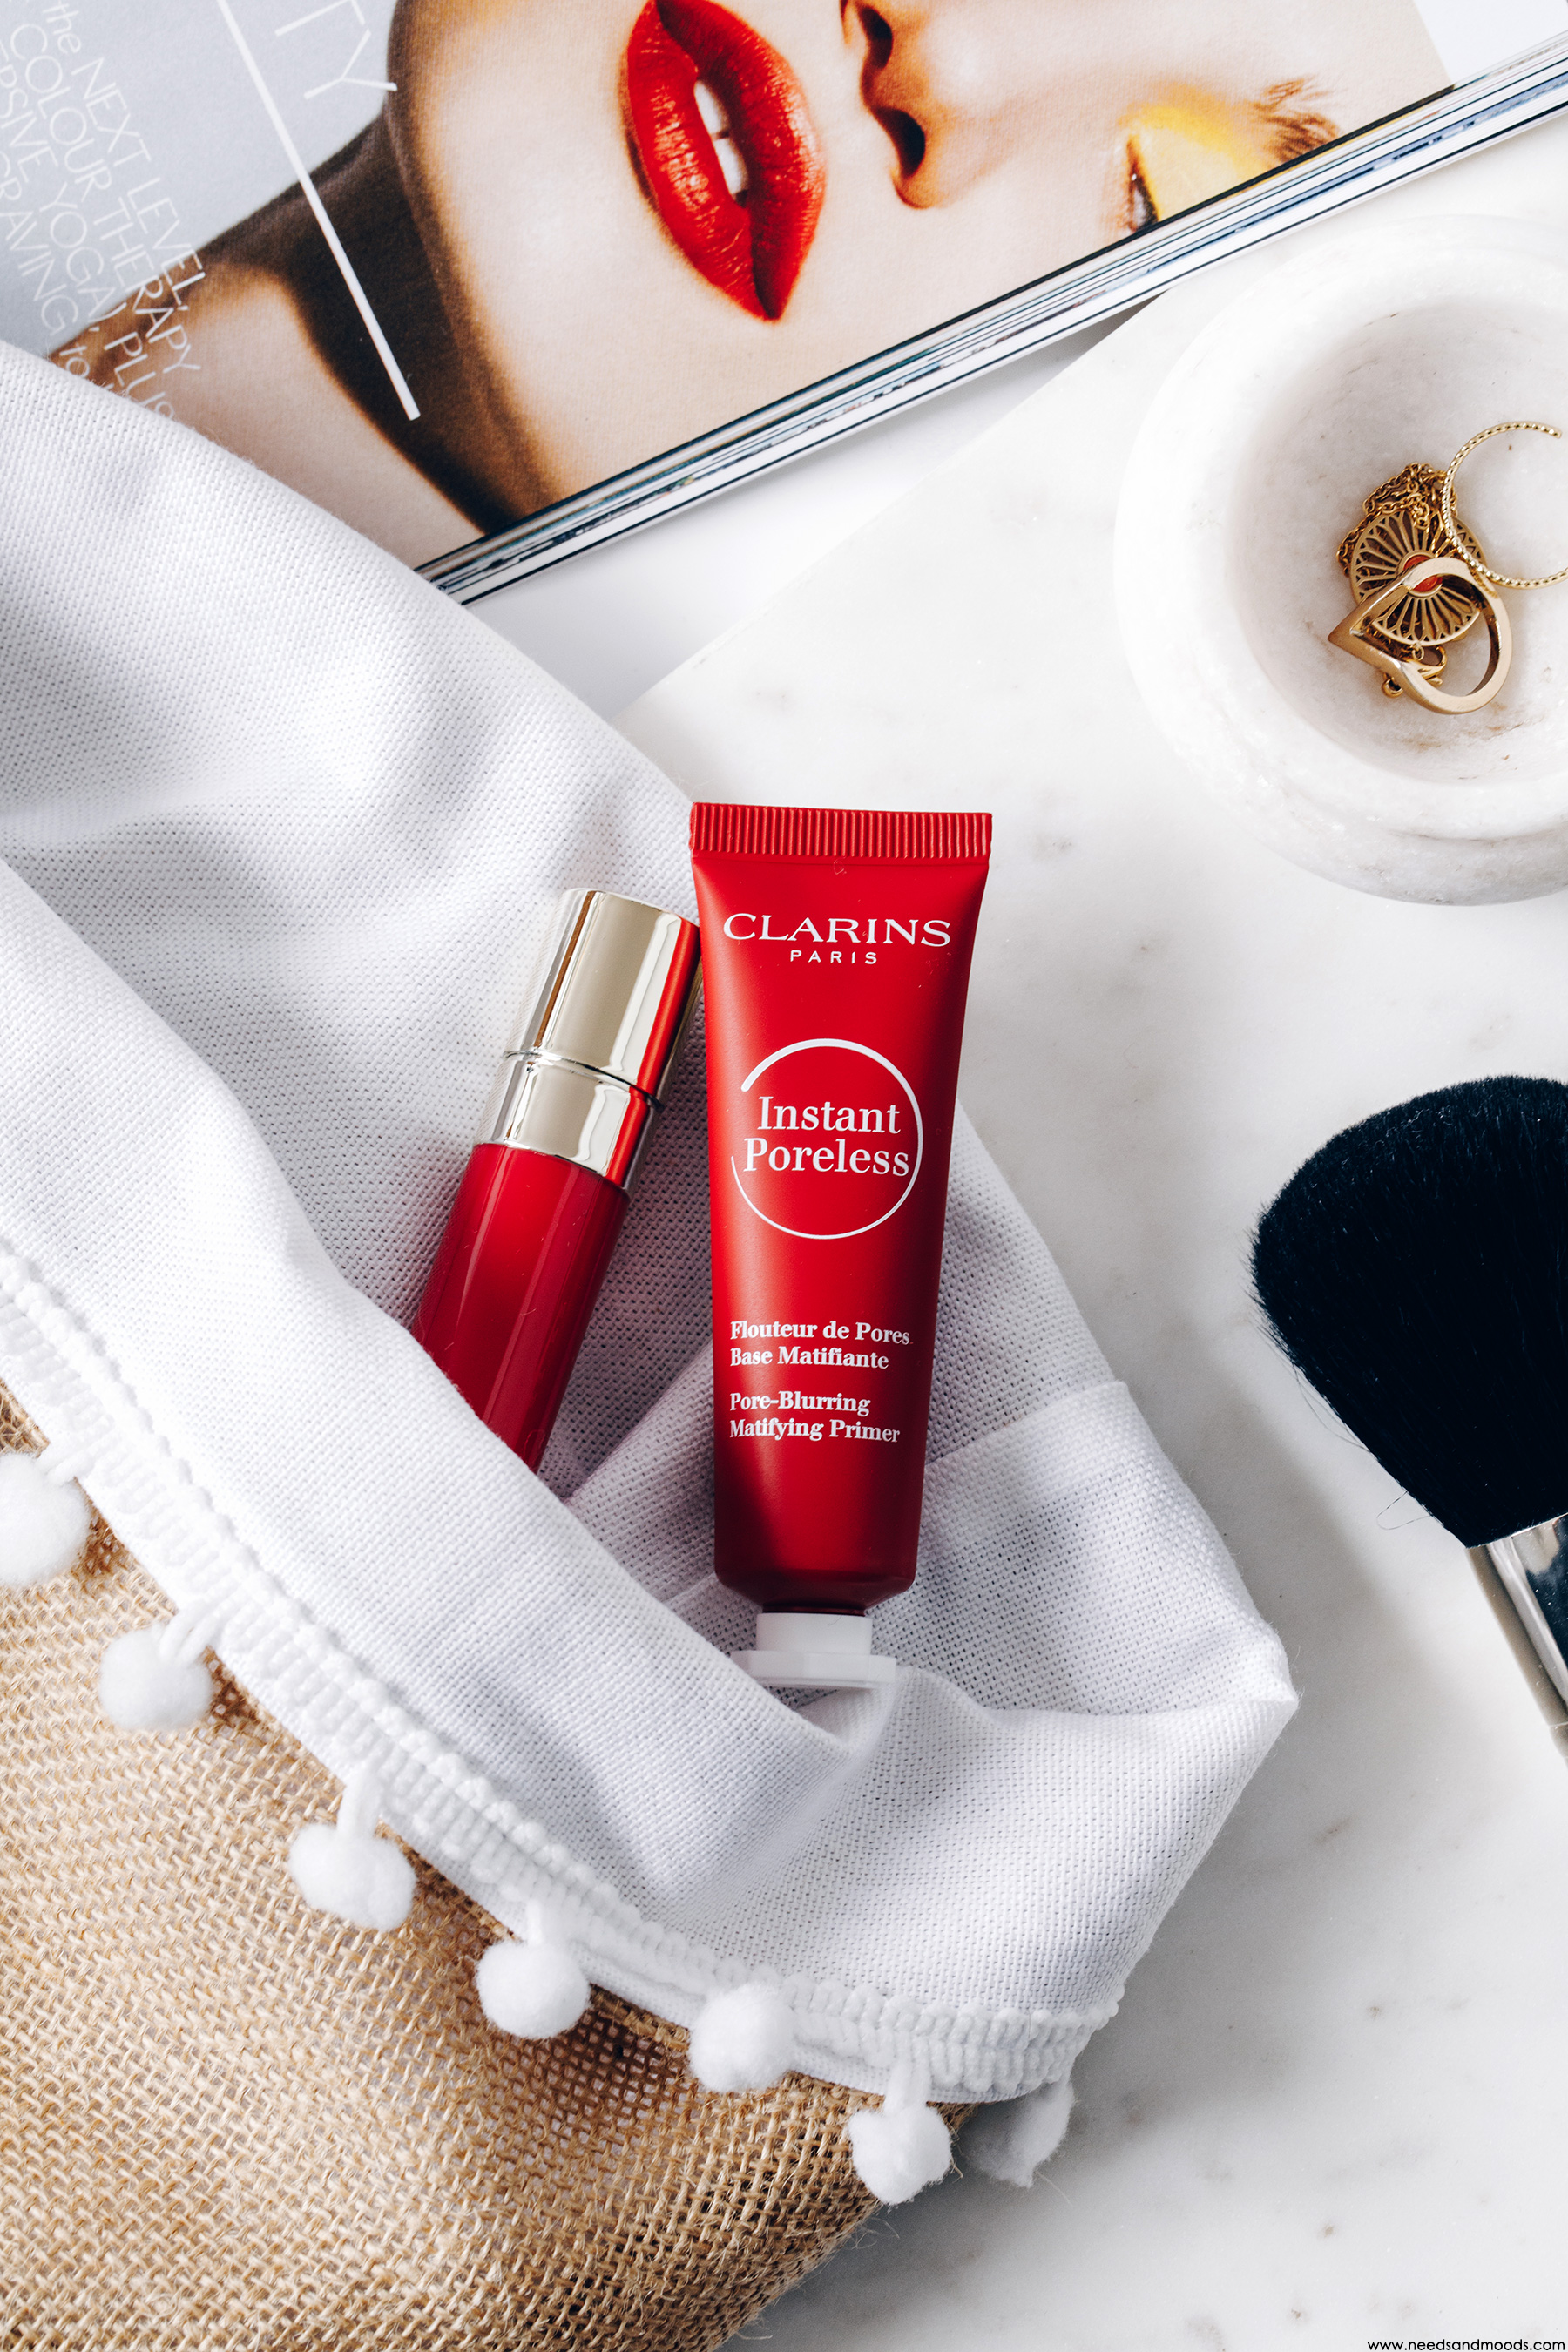 clarins instant poreless avis test